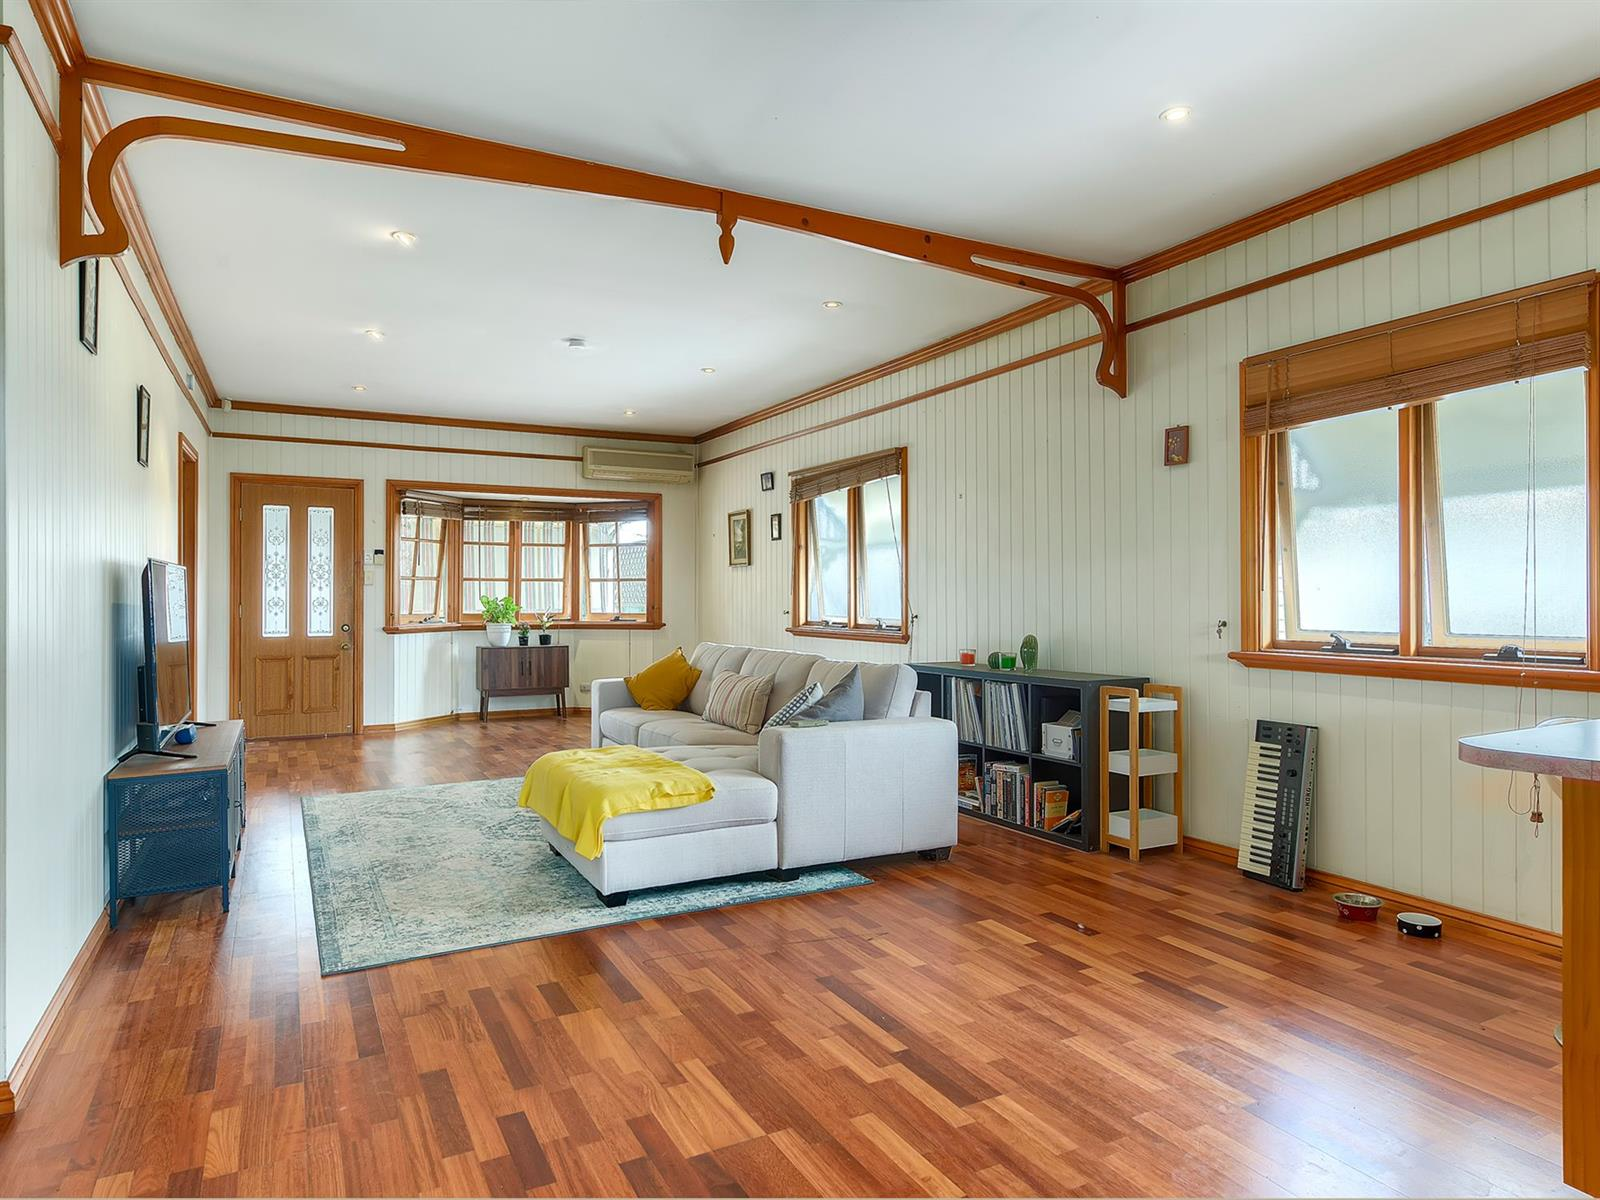 81 Orange Grove Rd COOPERS PLAINS QLD 4108 Image 1